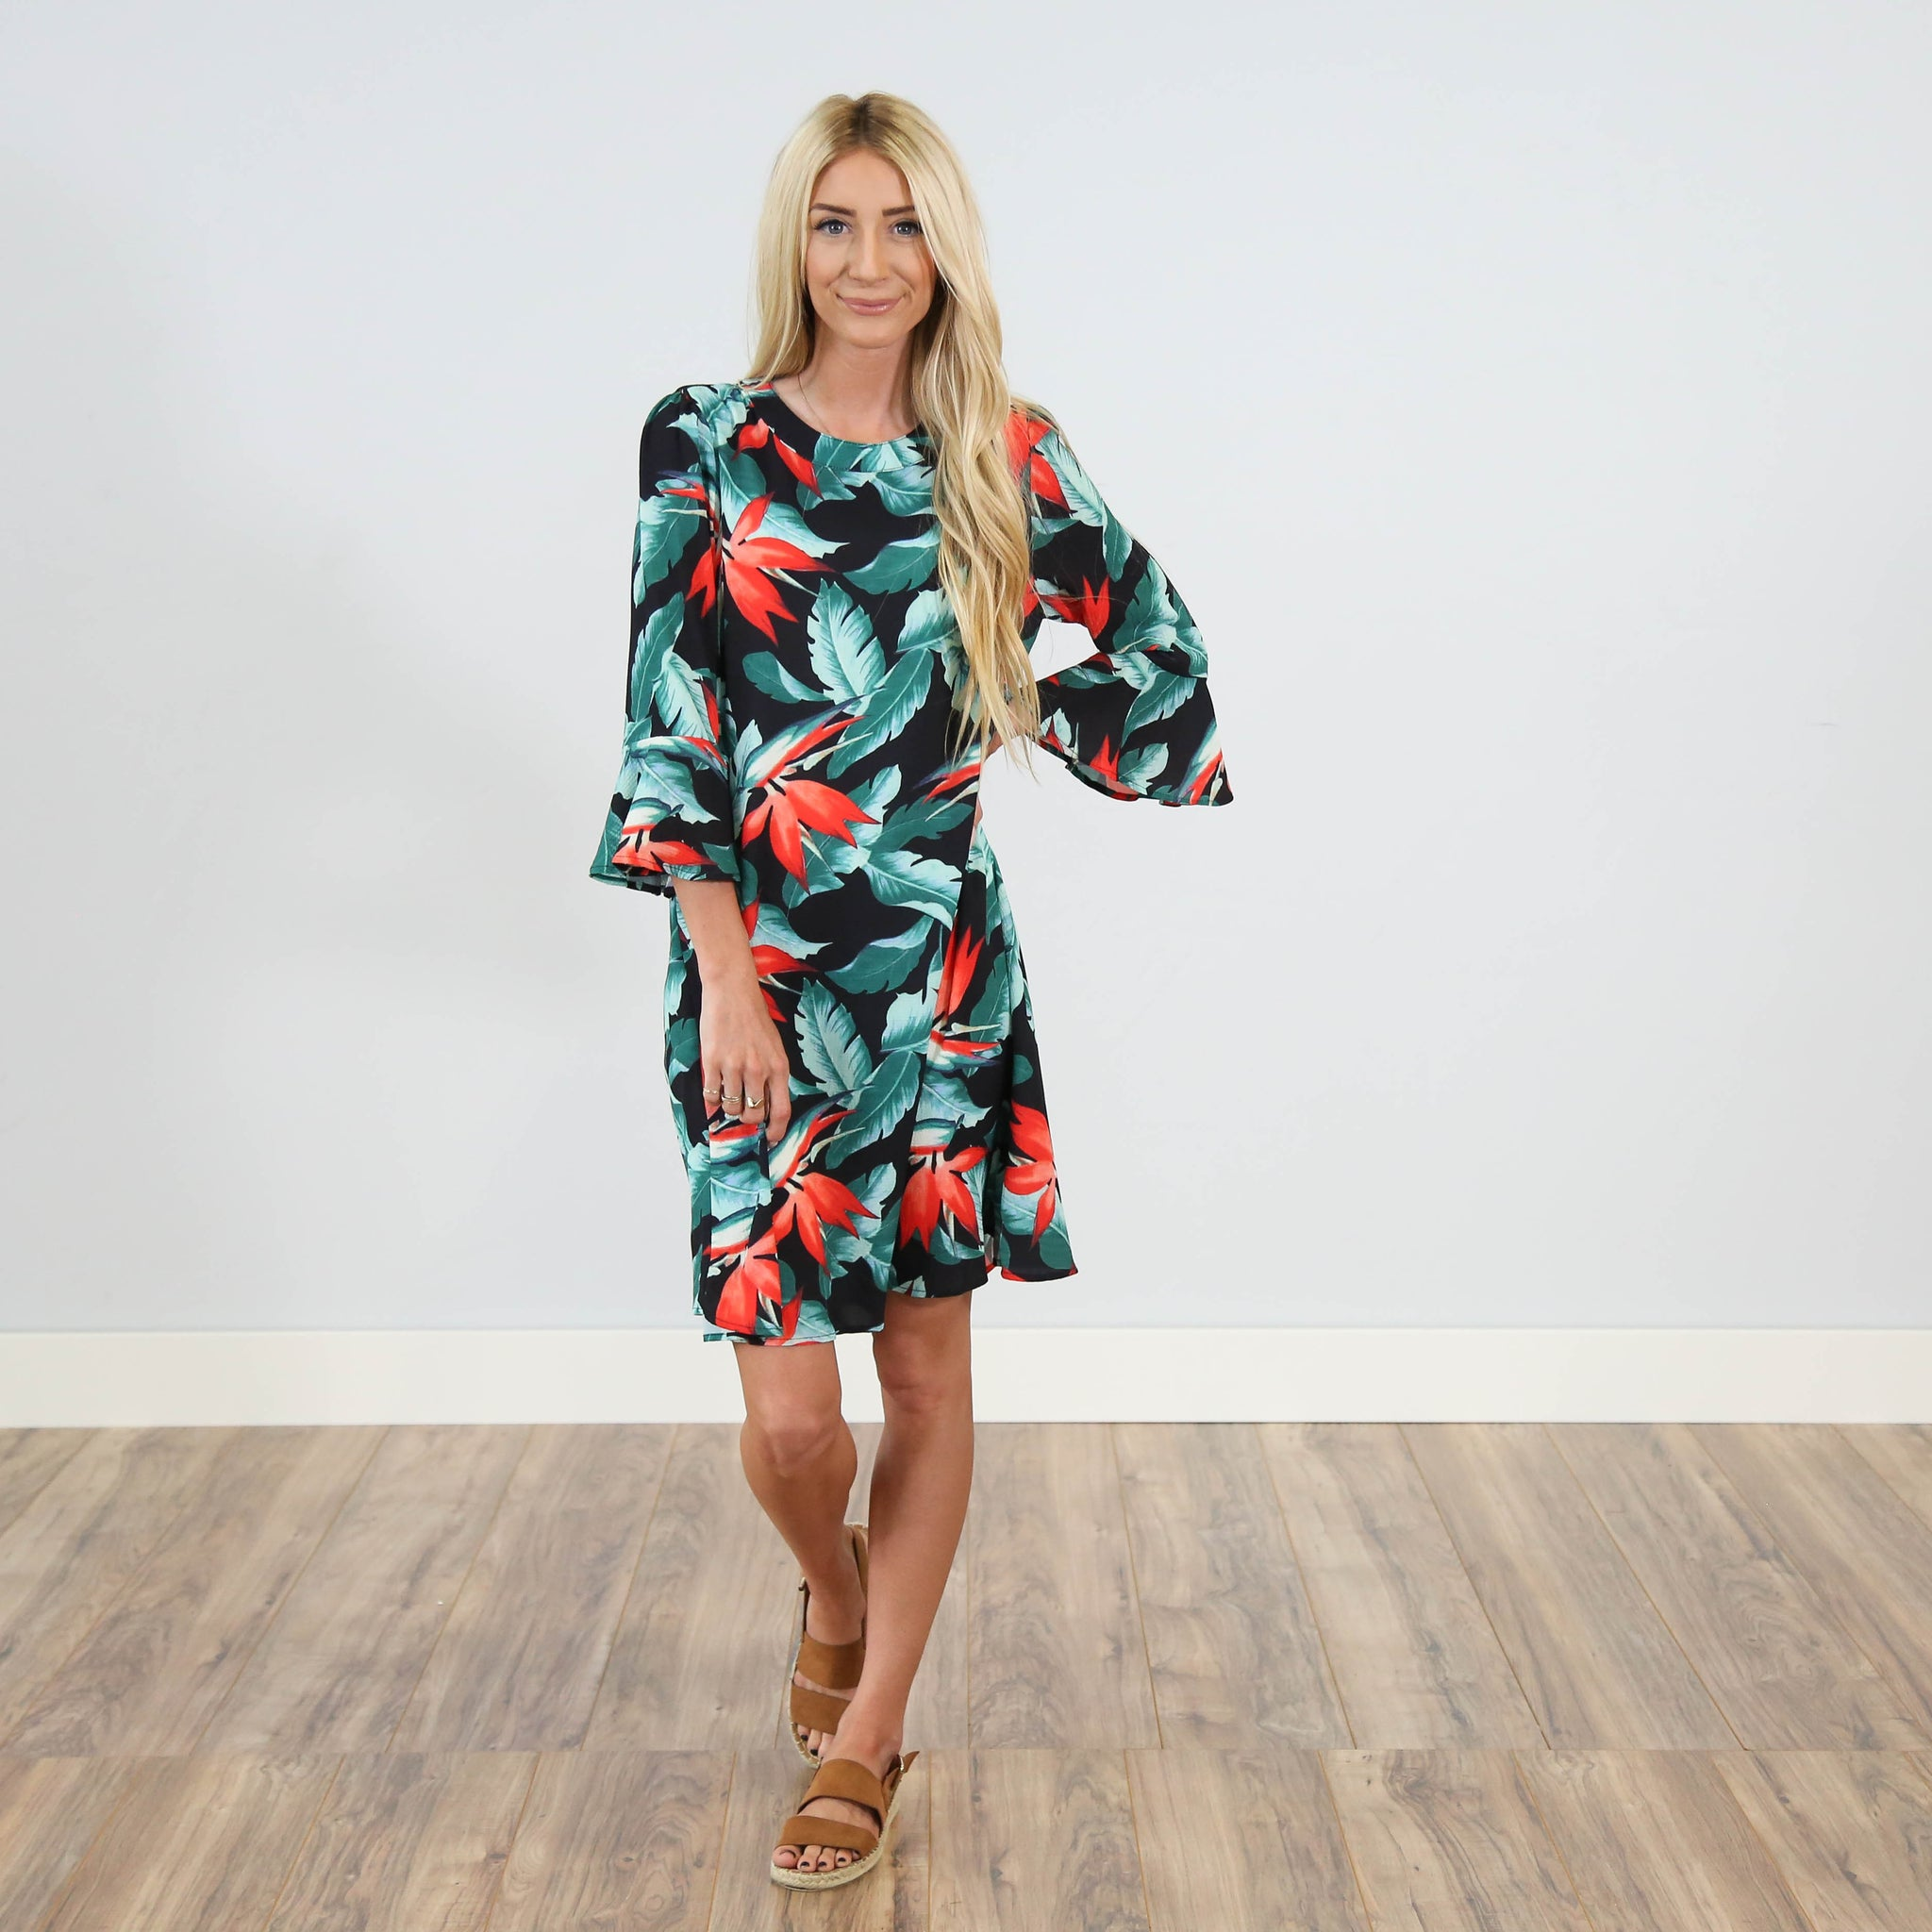 Aloha Printed Dress